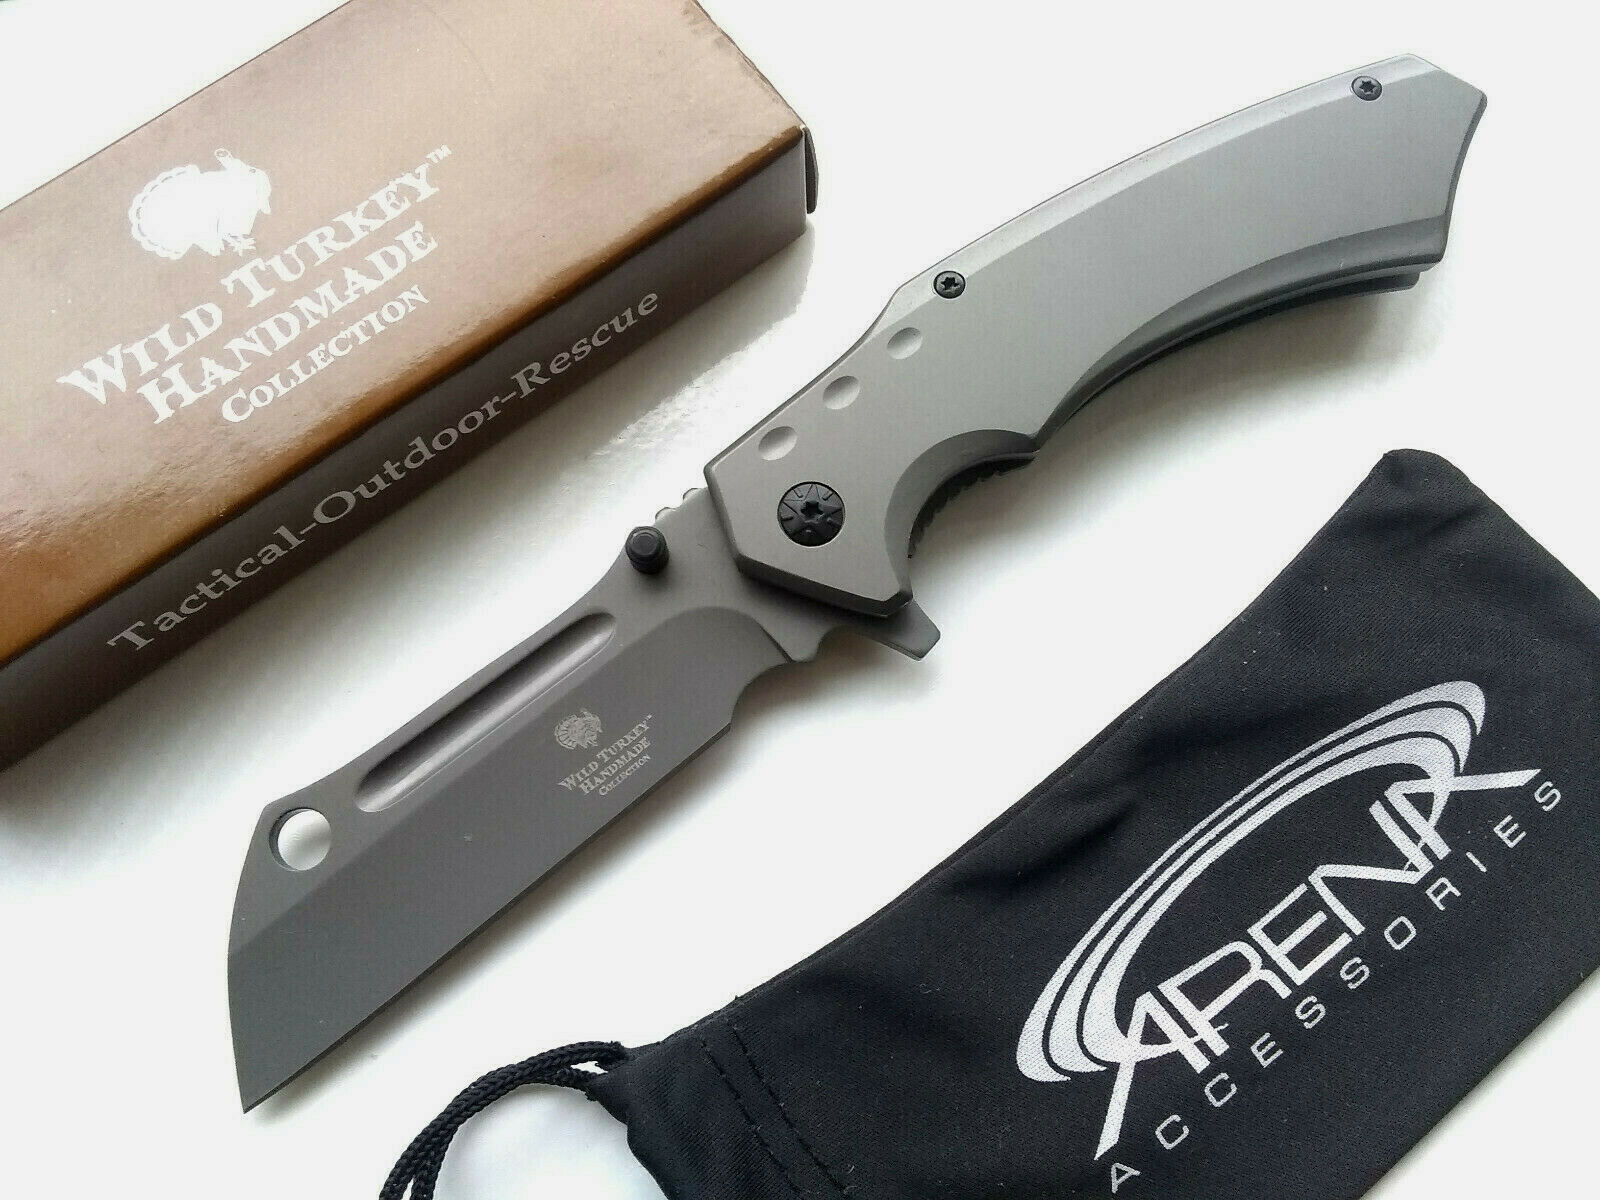 Snake Eye Gray Ti Coated Spring Assisted Pocket Knife Flipper Sheepsfoot Cleaver 440 EDC Blade